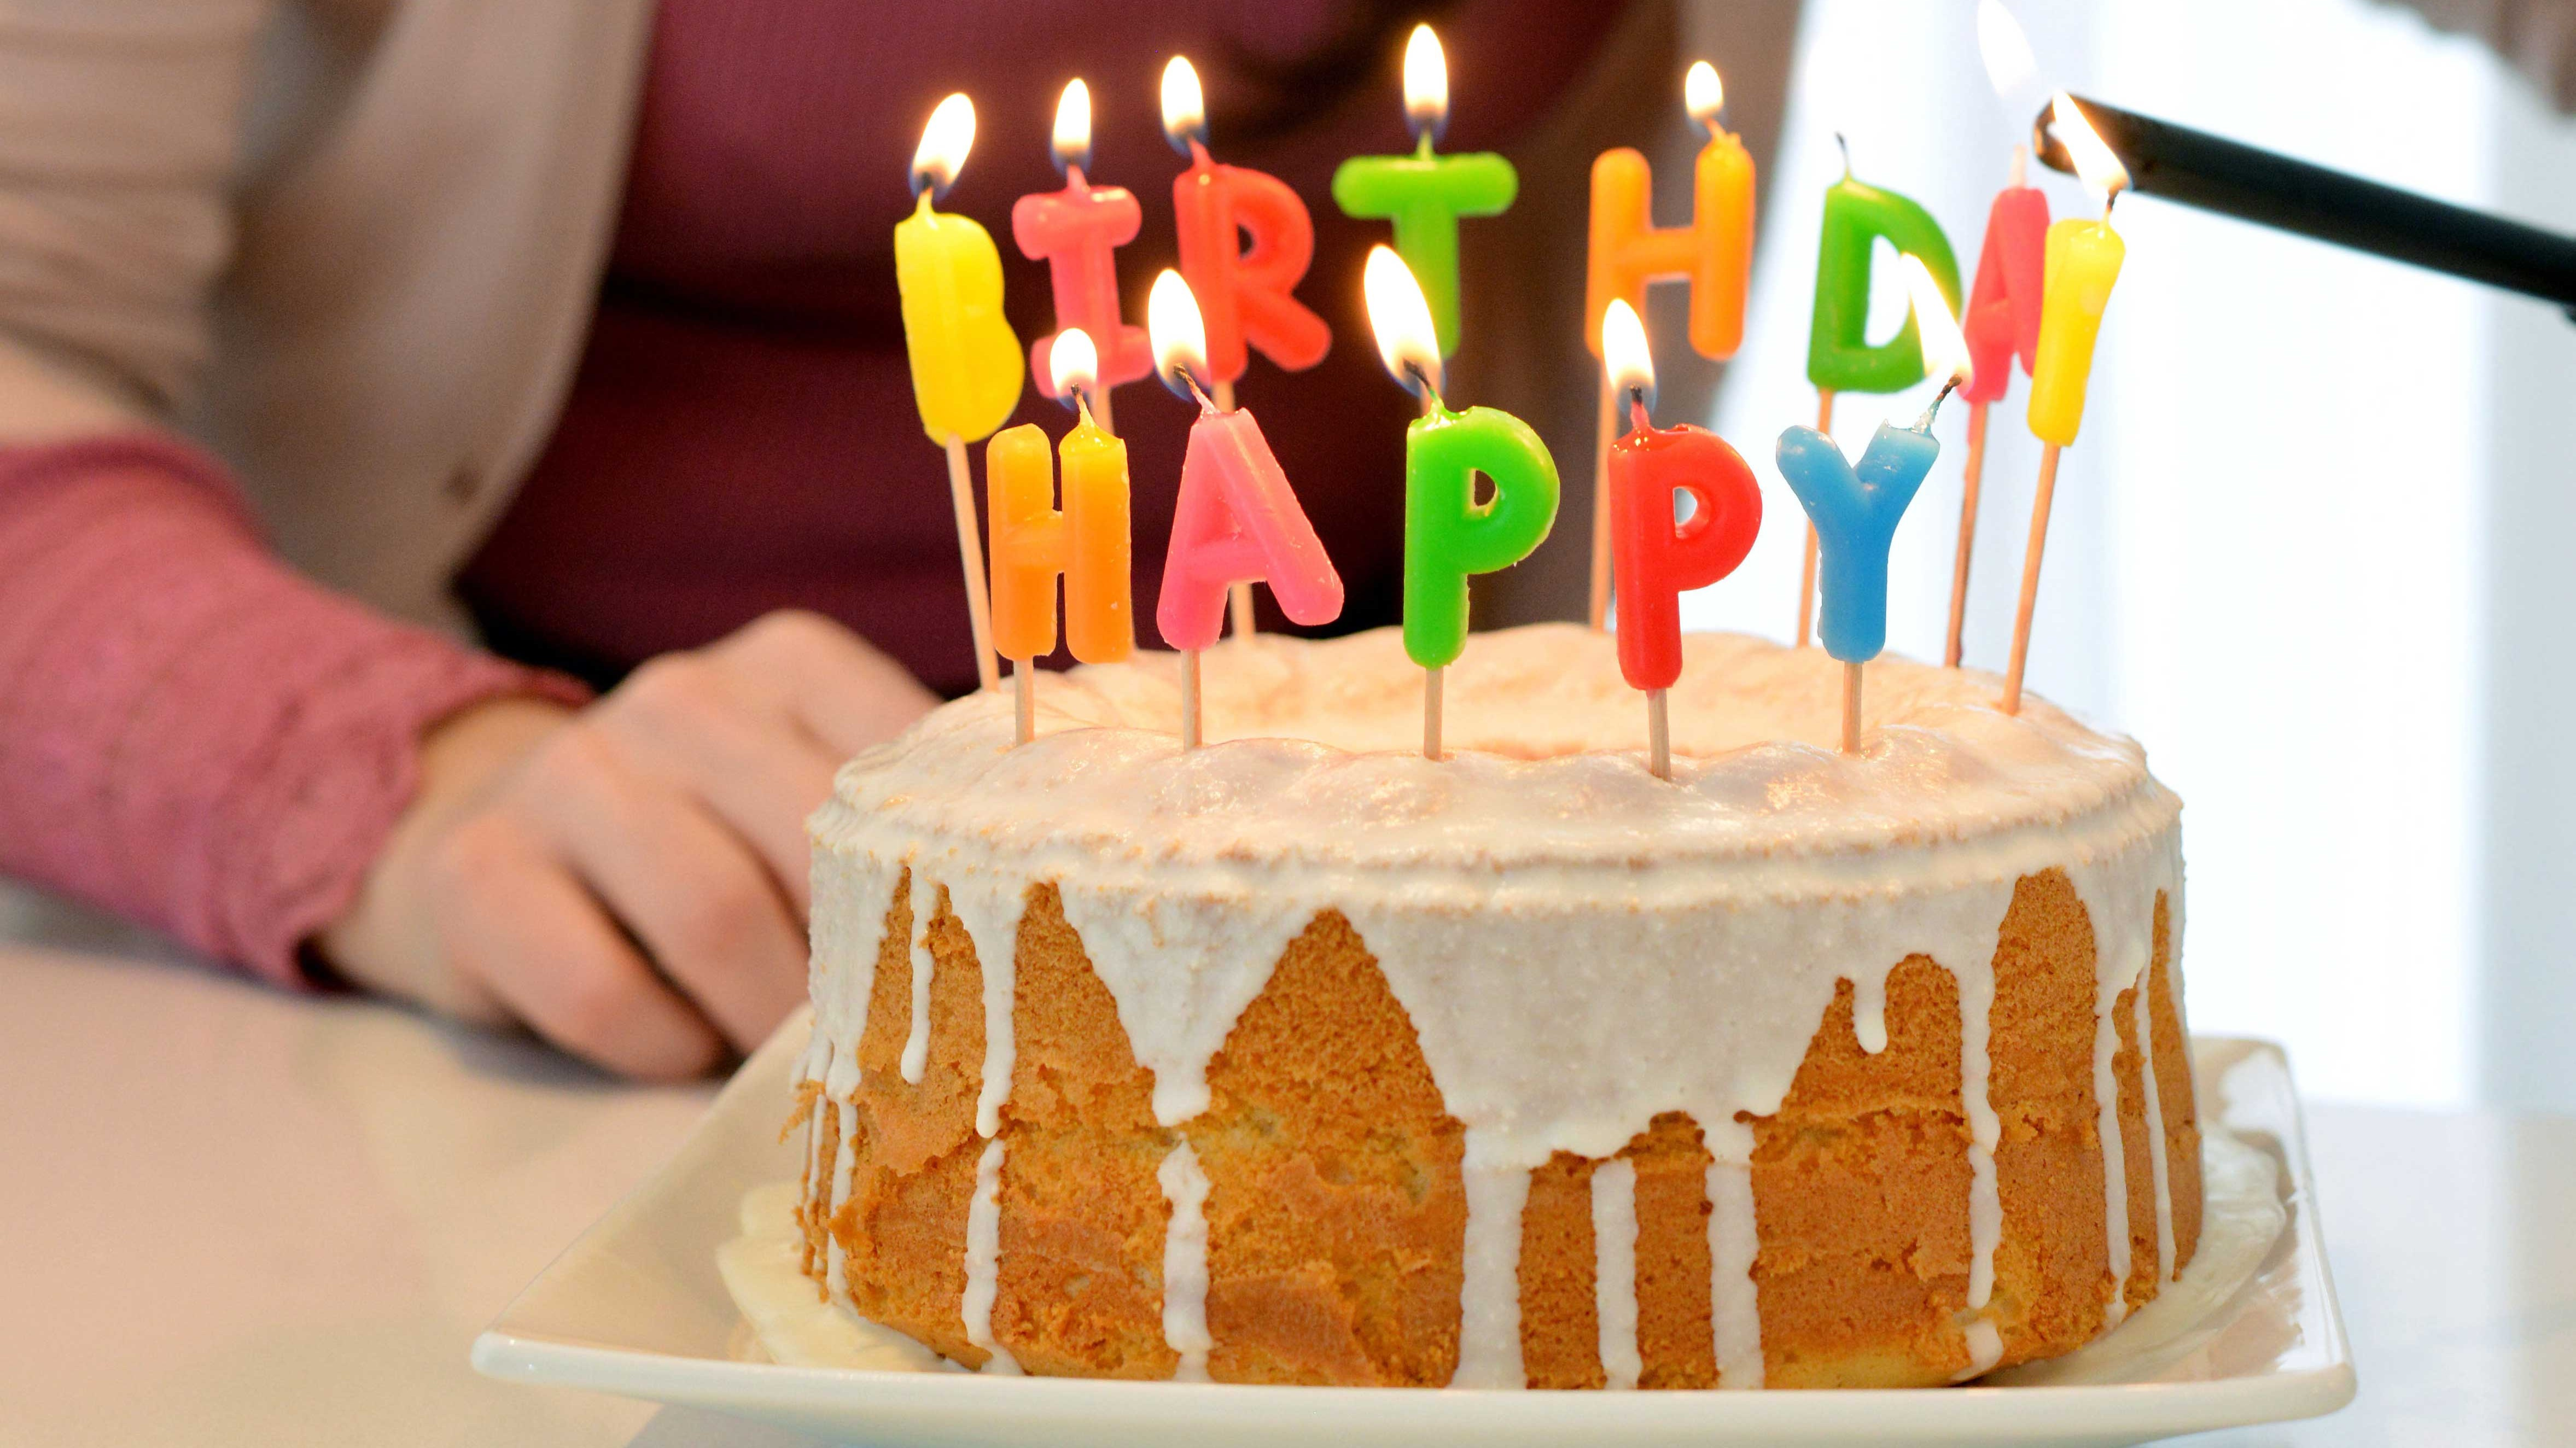 Primary School Bans Birthday Cakes In Class Over Allergy